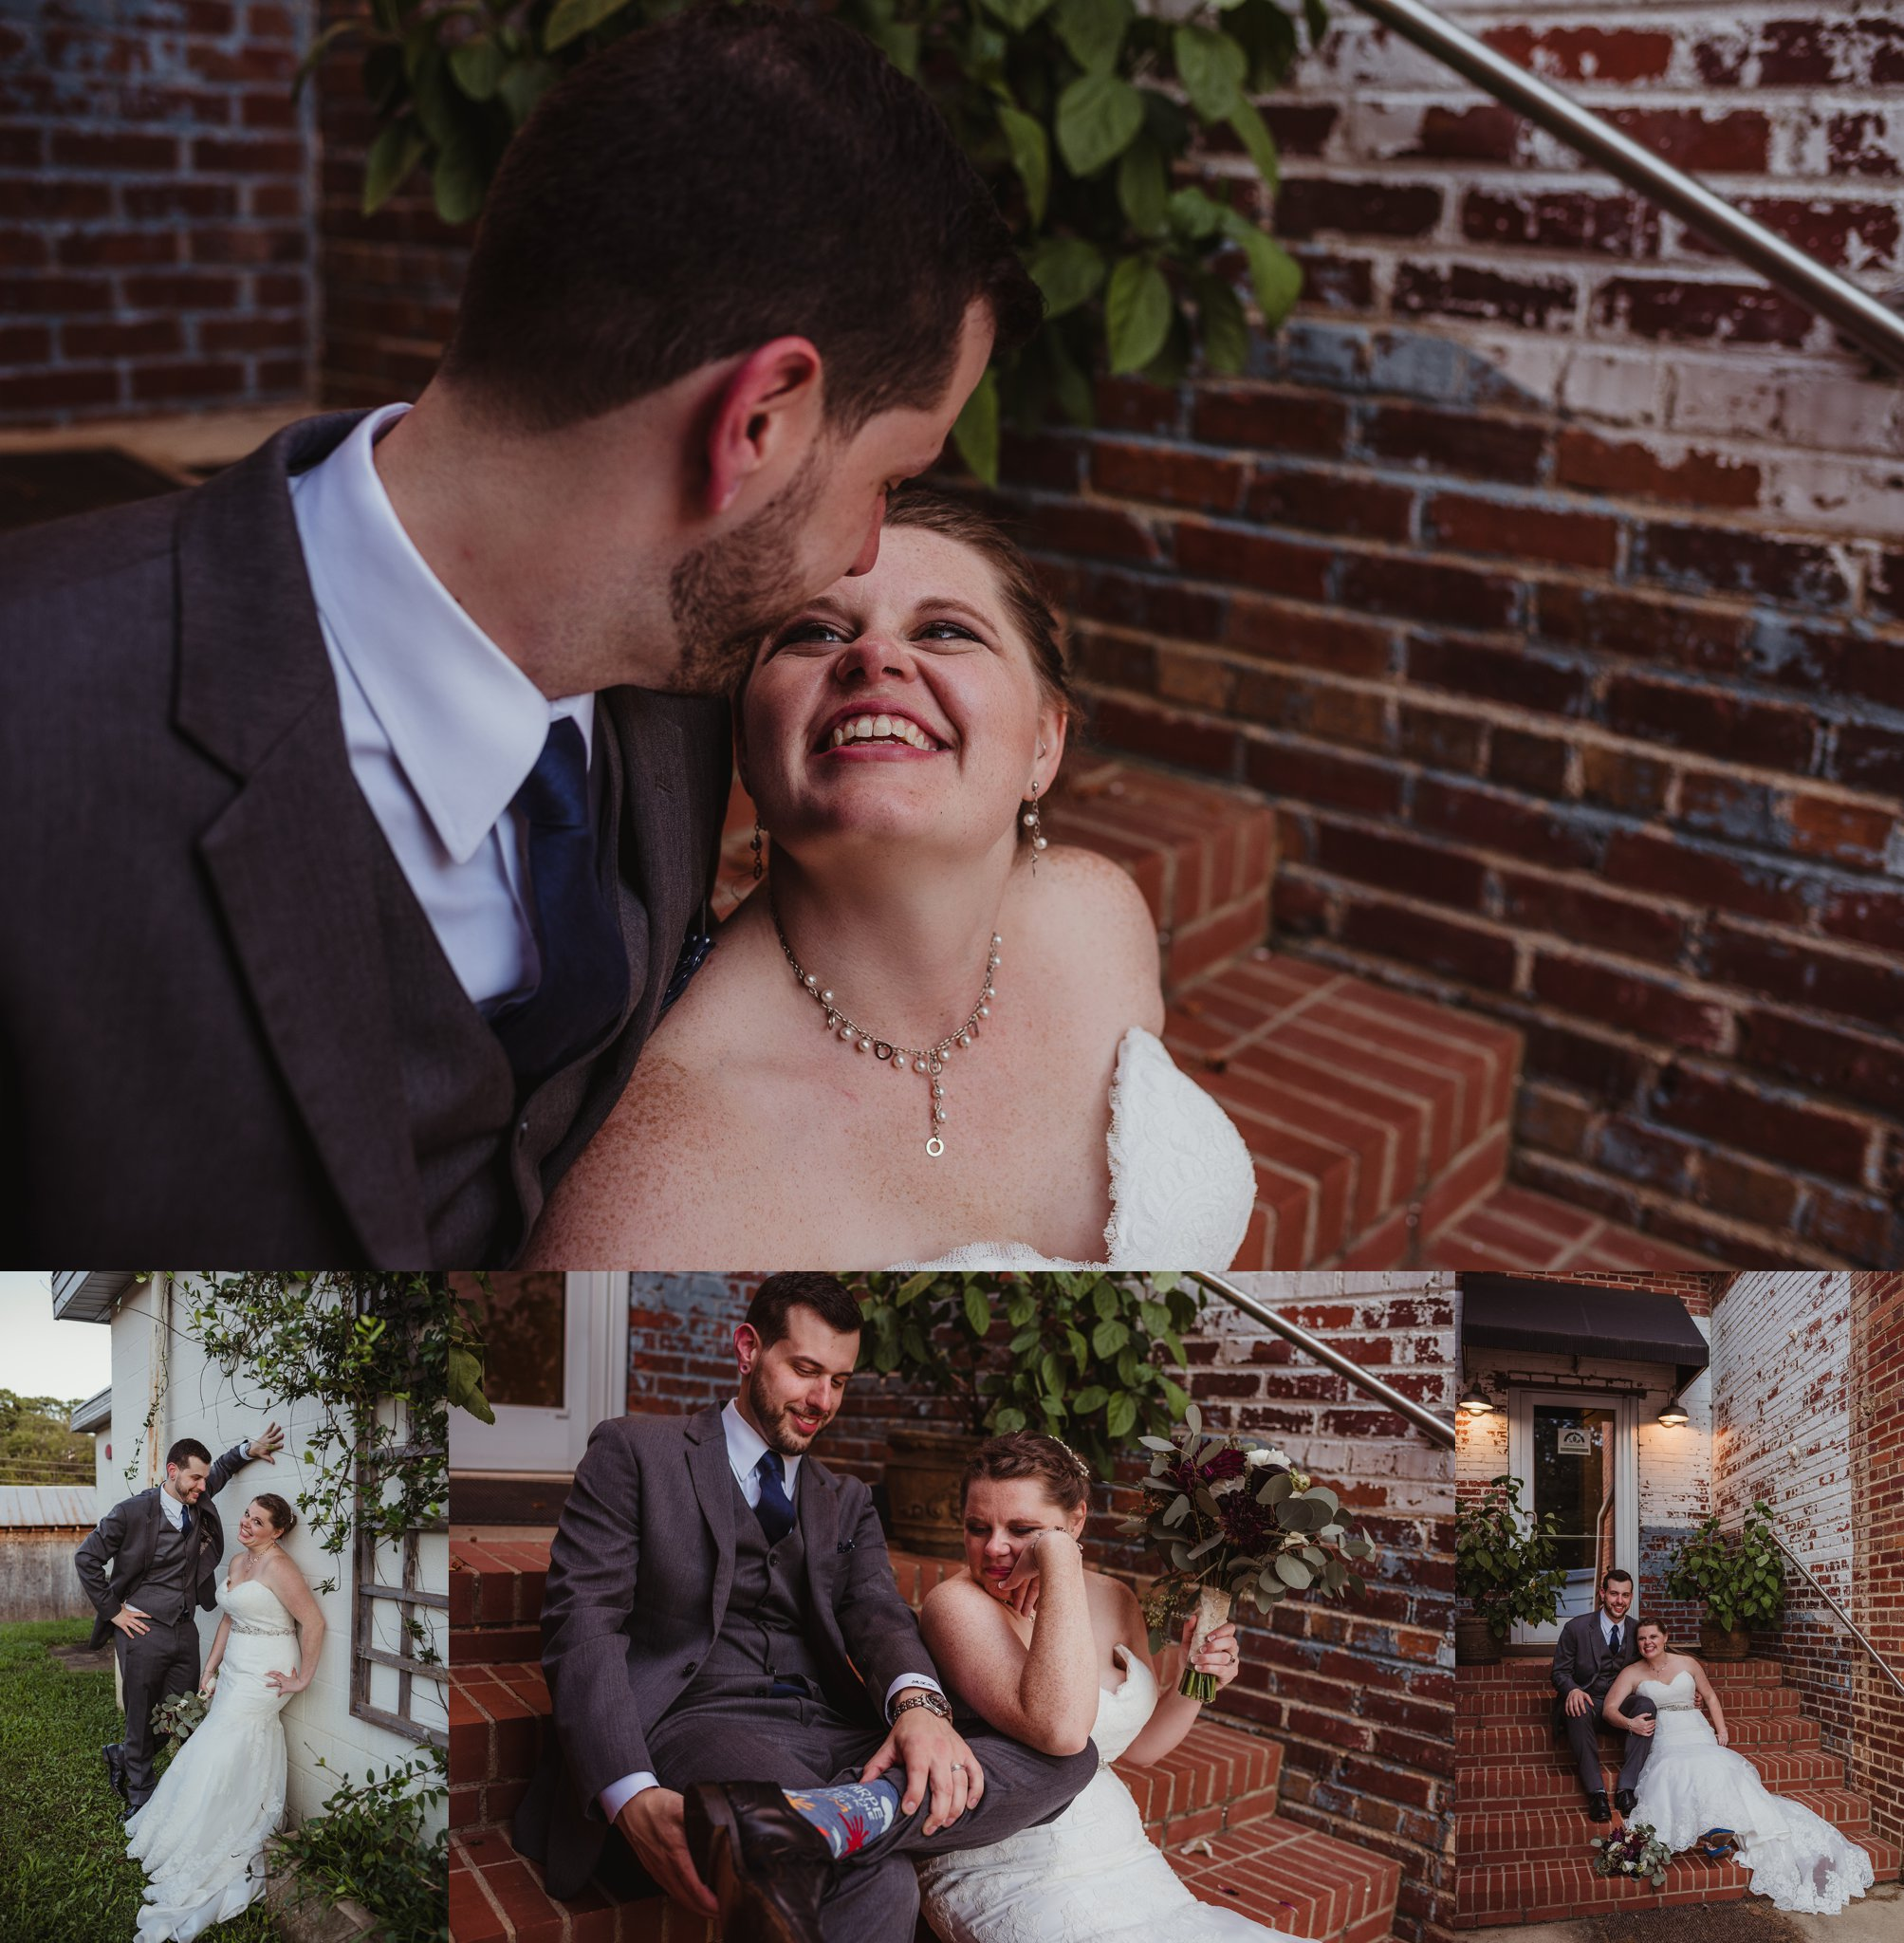 The bride and groom take portraits outside by the brick stairs after their wedding ceremony in Raleigh, North Carolina, pictures by Rose Trail Images.